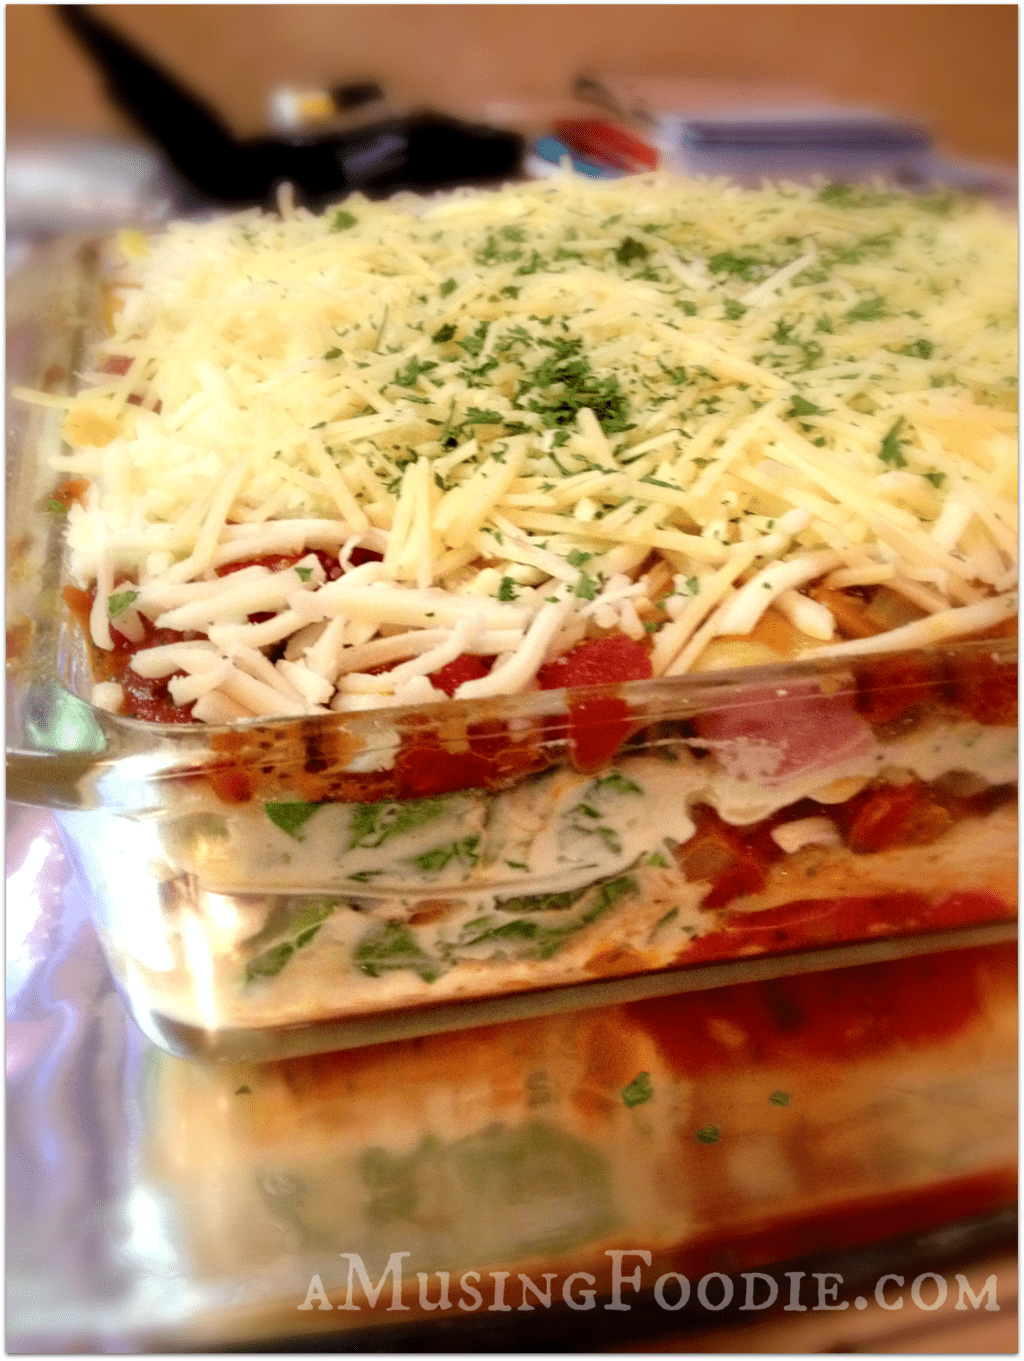 Spinach, Mushroom and Italian Sausage Lasagna | (a)Musing Foodie